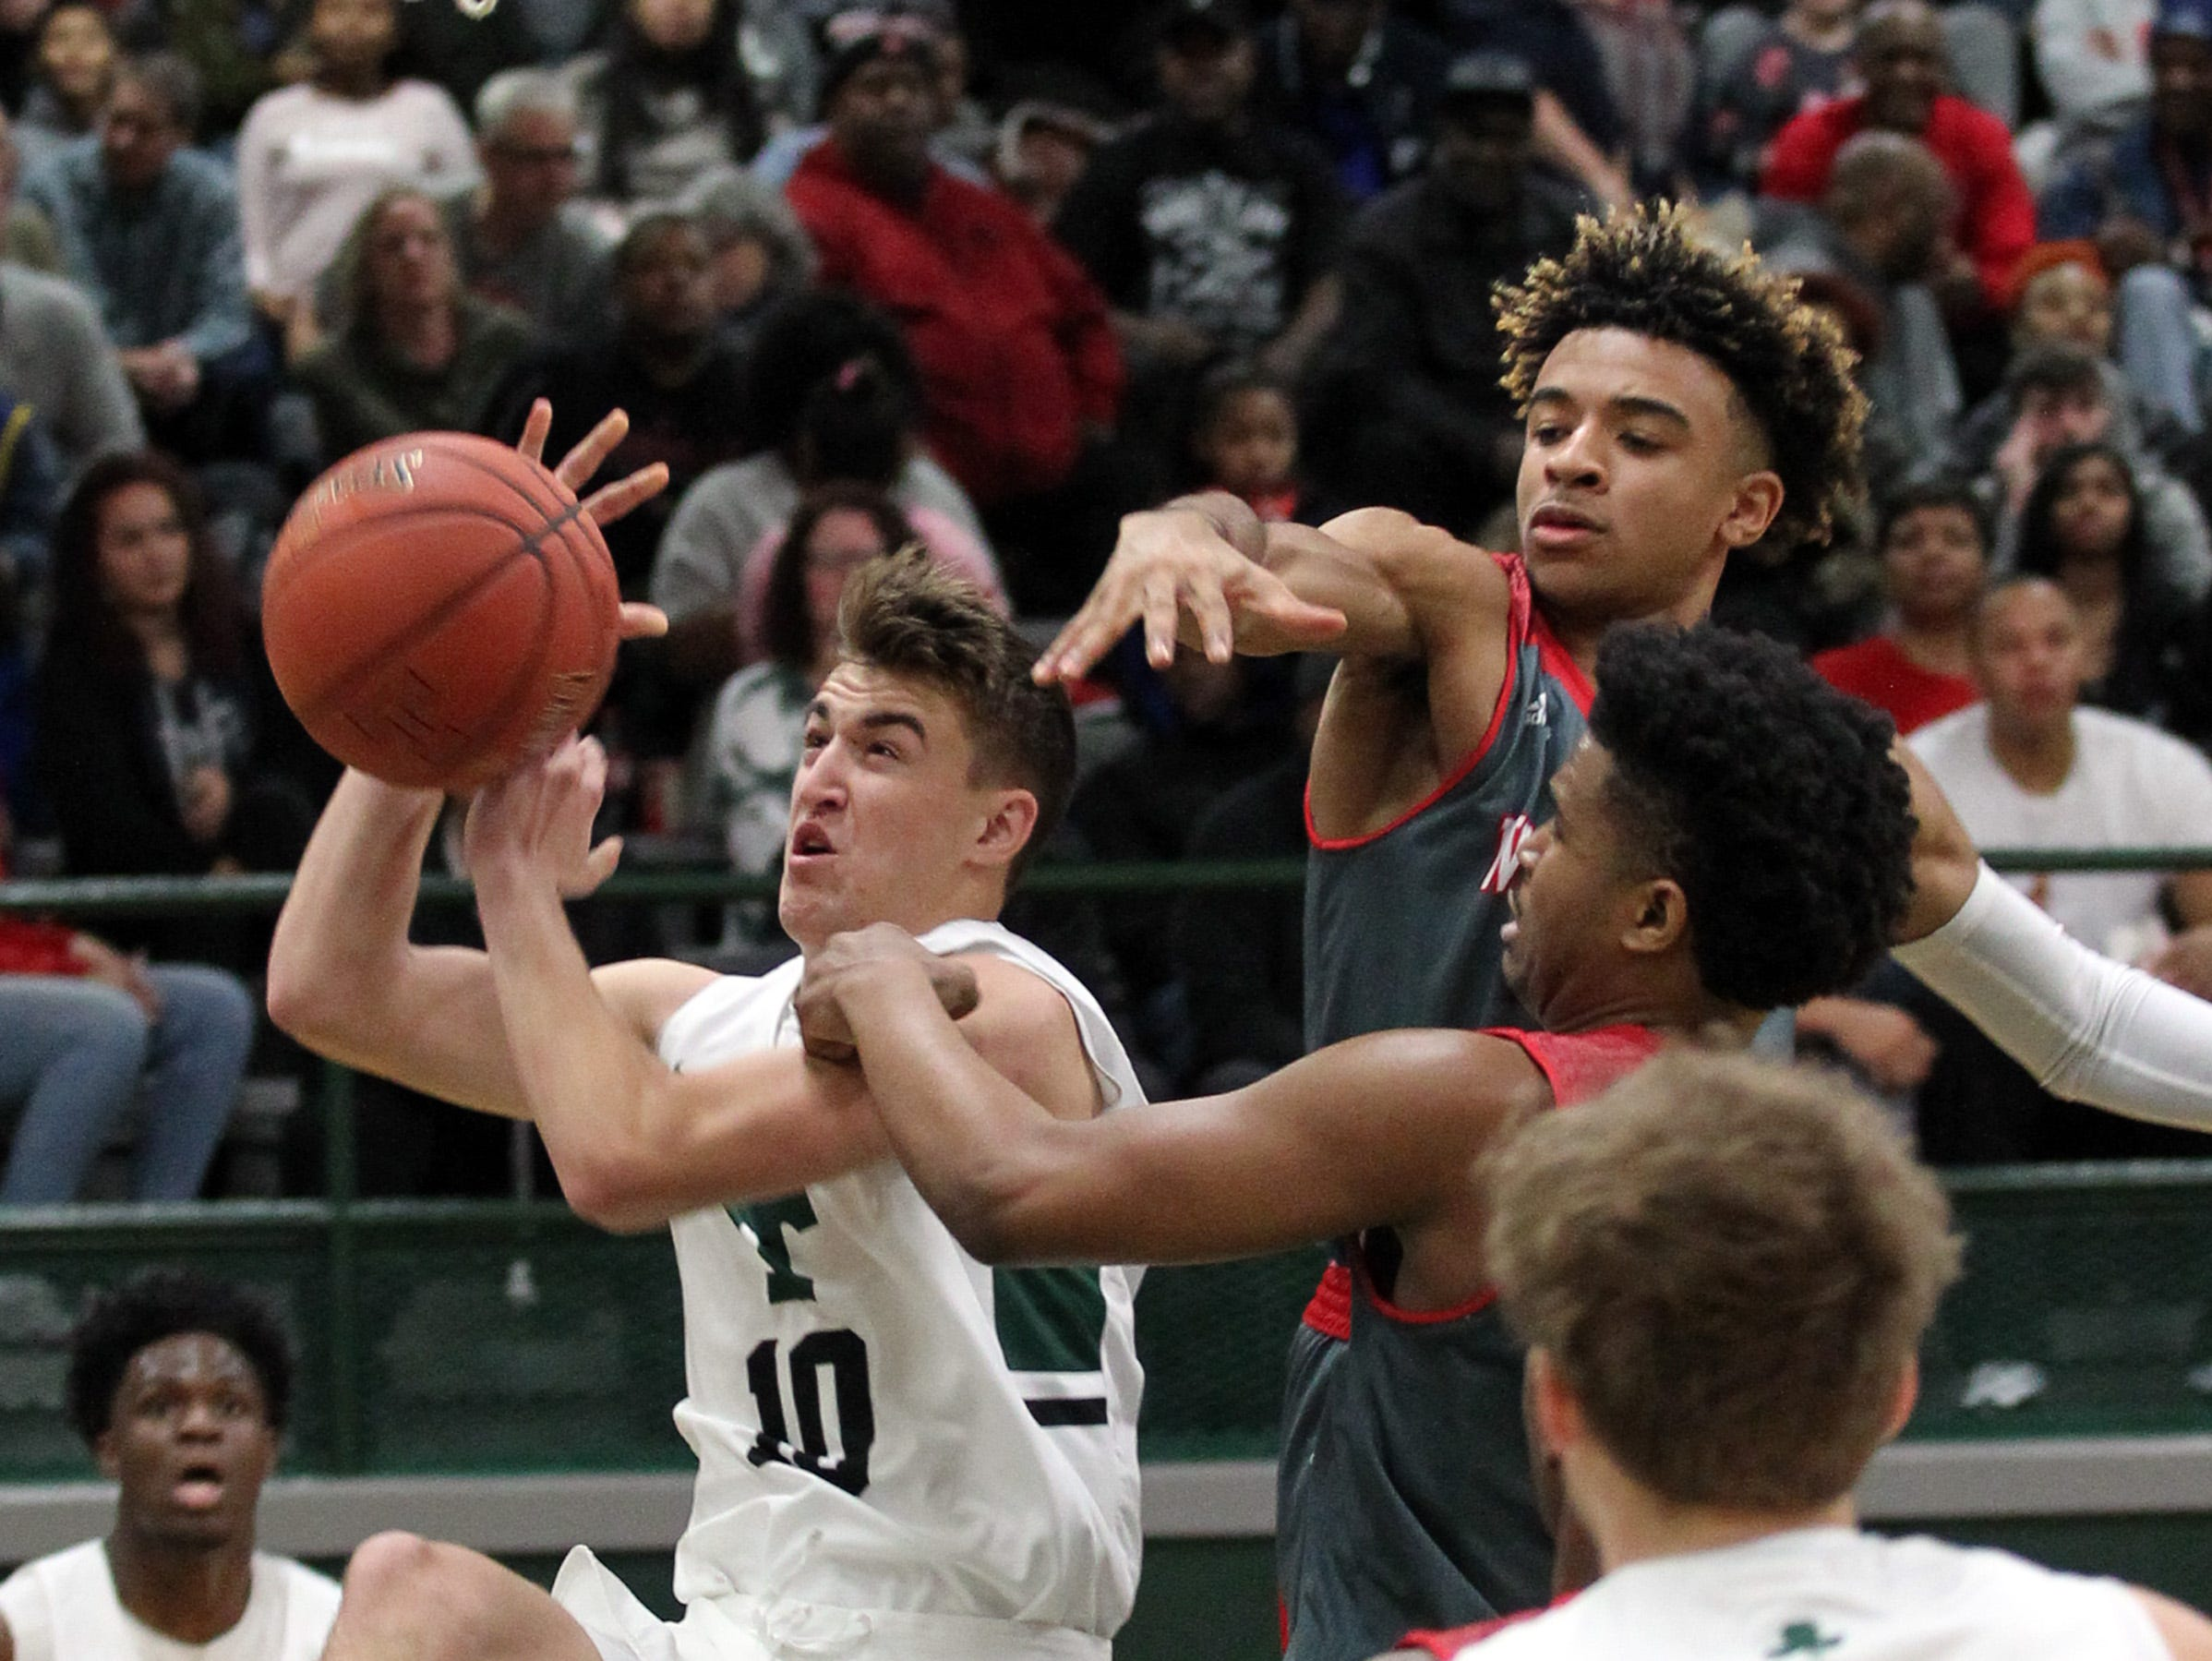 Trinity High School's Kamari Kenemore (14) fights to get his shot off under pressure from Waggener High School's Kameron Barnett (1) during the first half of play at Trinity High School in Louisville, Kentucky, Jan. 11,  2019.